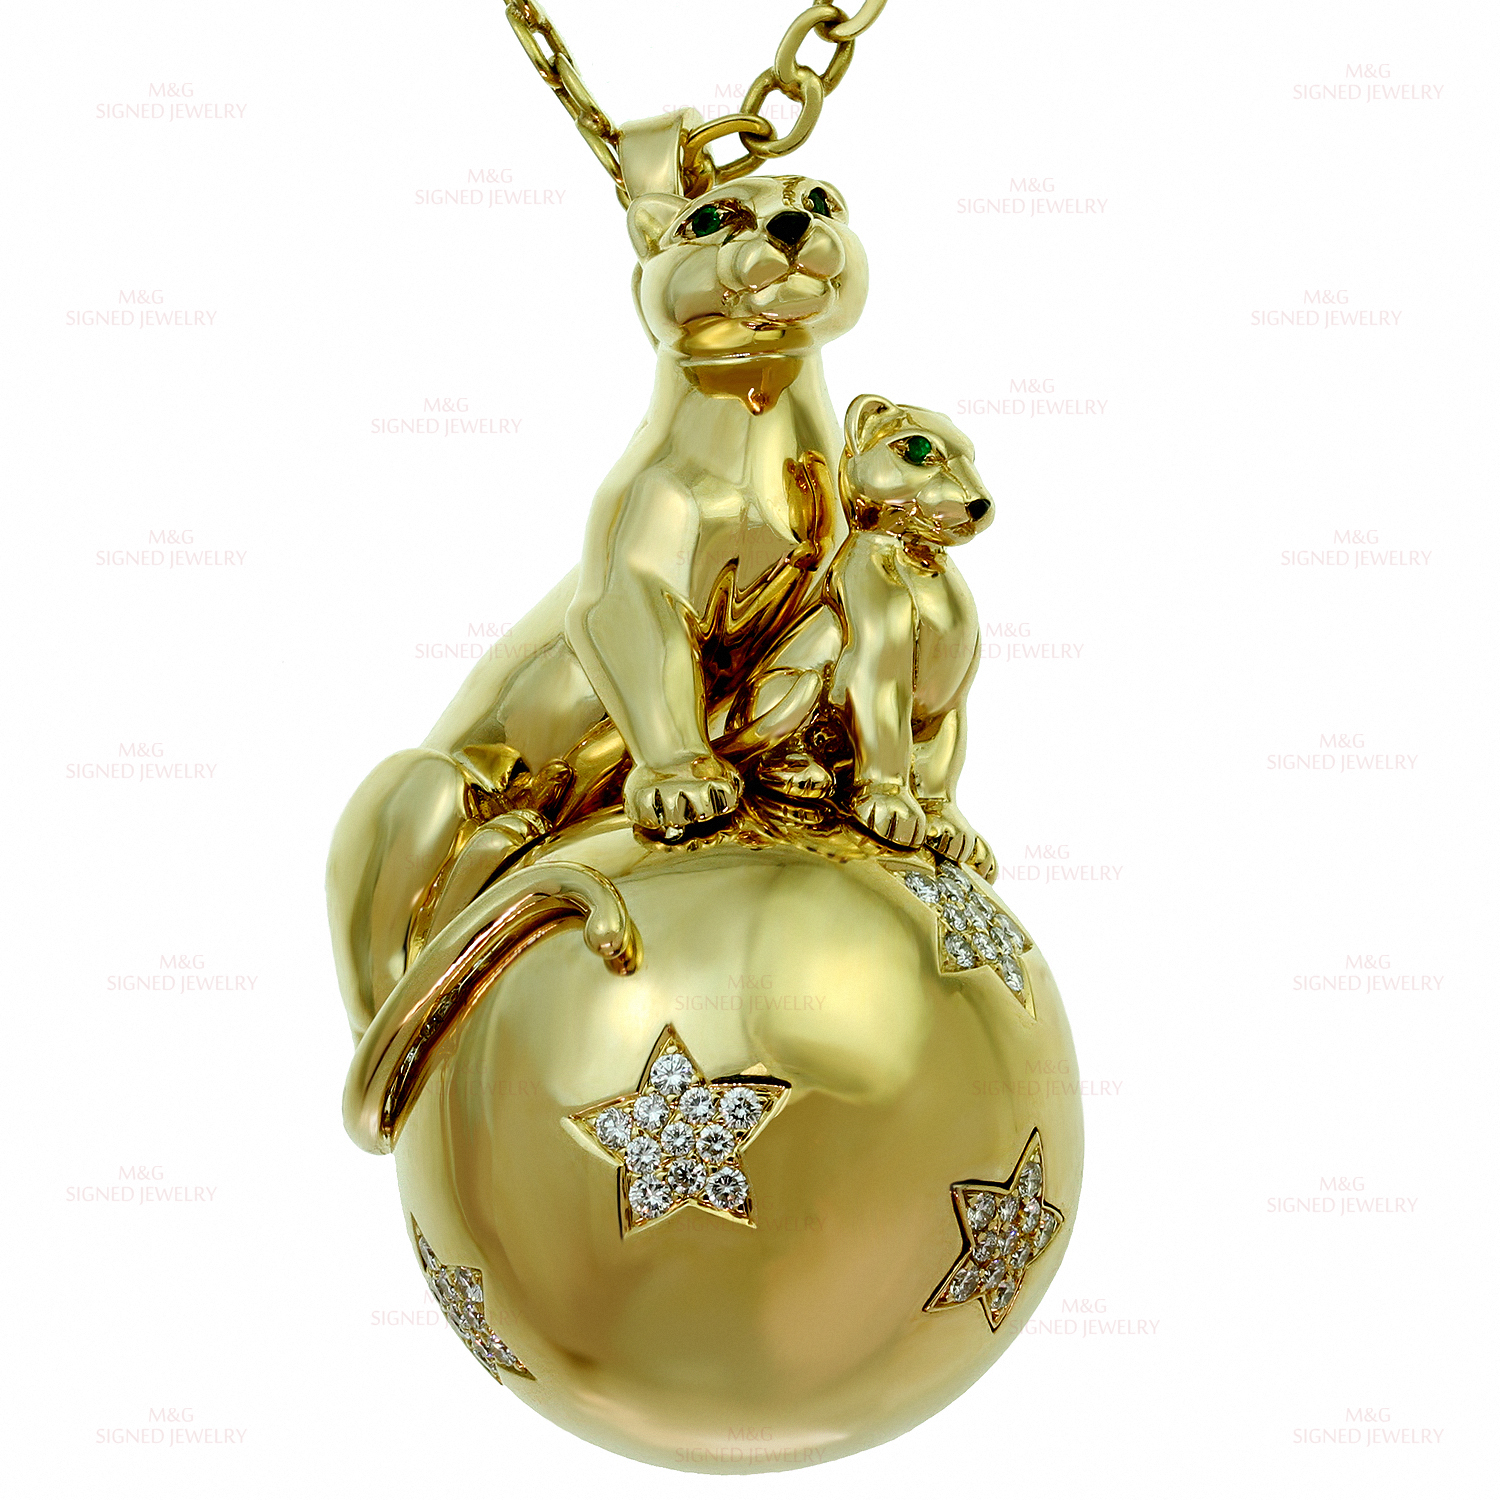 CARTIER Panthere Diamond 18k Yellow Gold Panthers Balloon Pendant Necklace